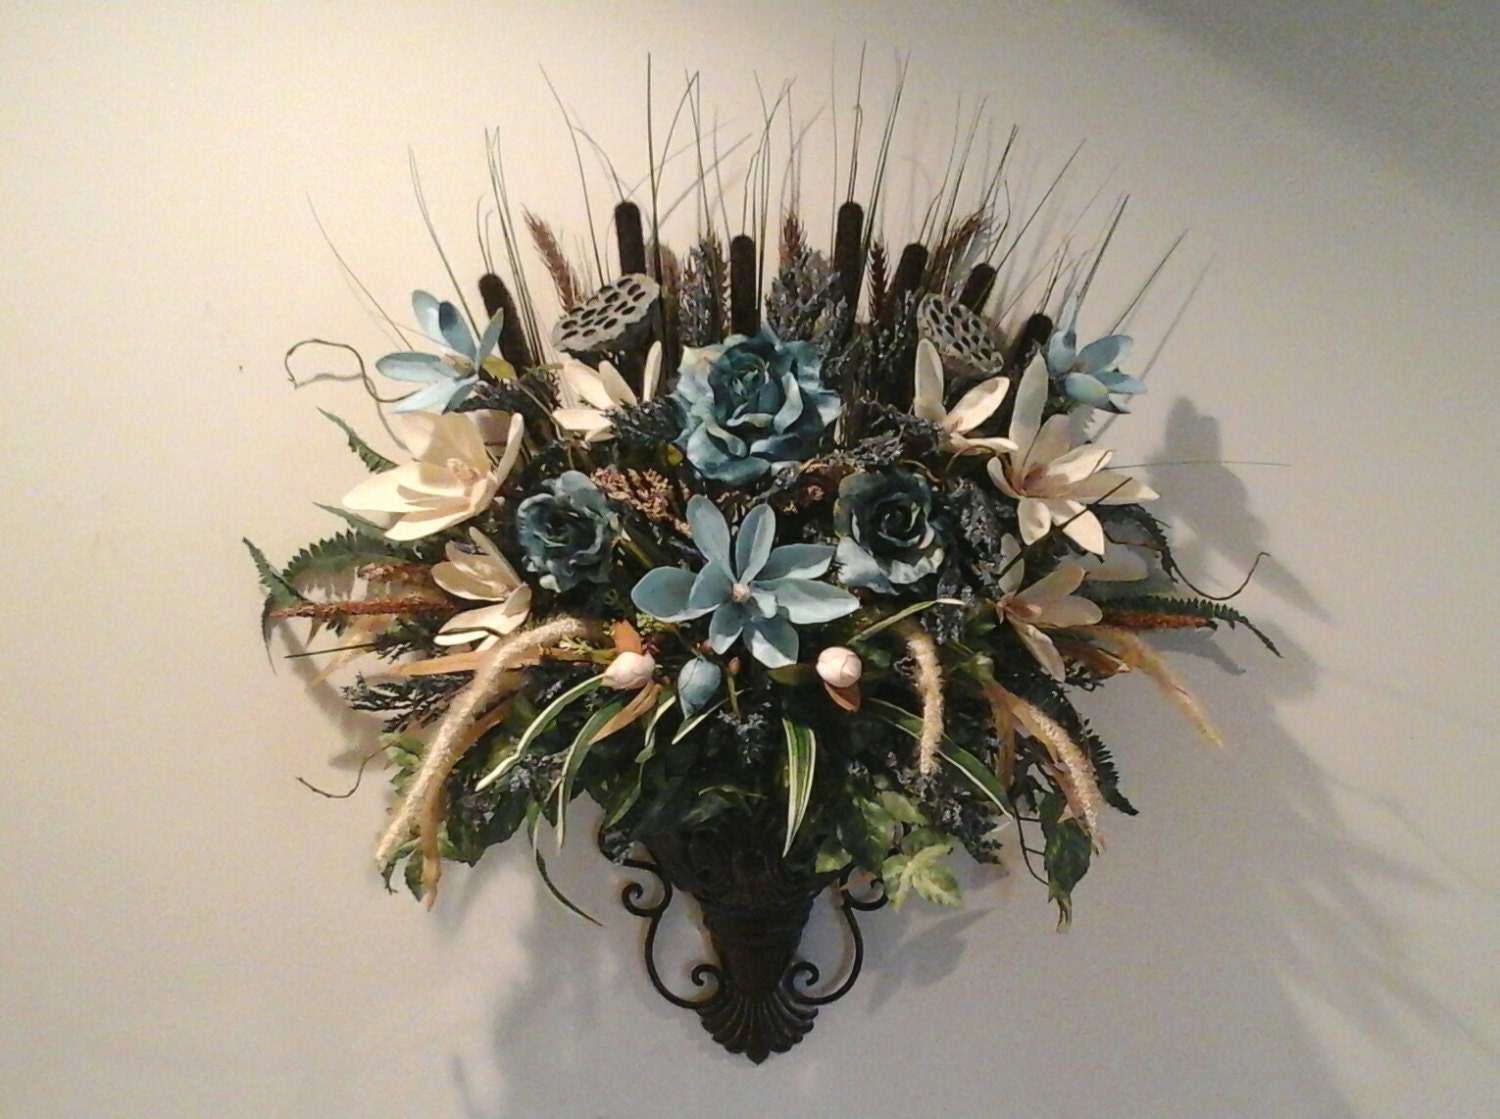 Floral Wall Sconce Wall Arrangement SHIPPING INCLUDED Wall on Wall Sconce Floral Arrangements Arrangement id=56693